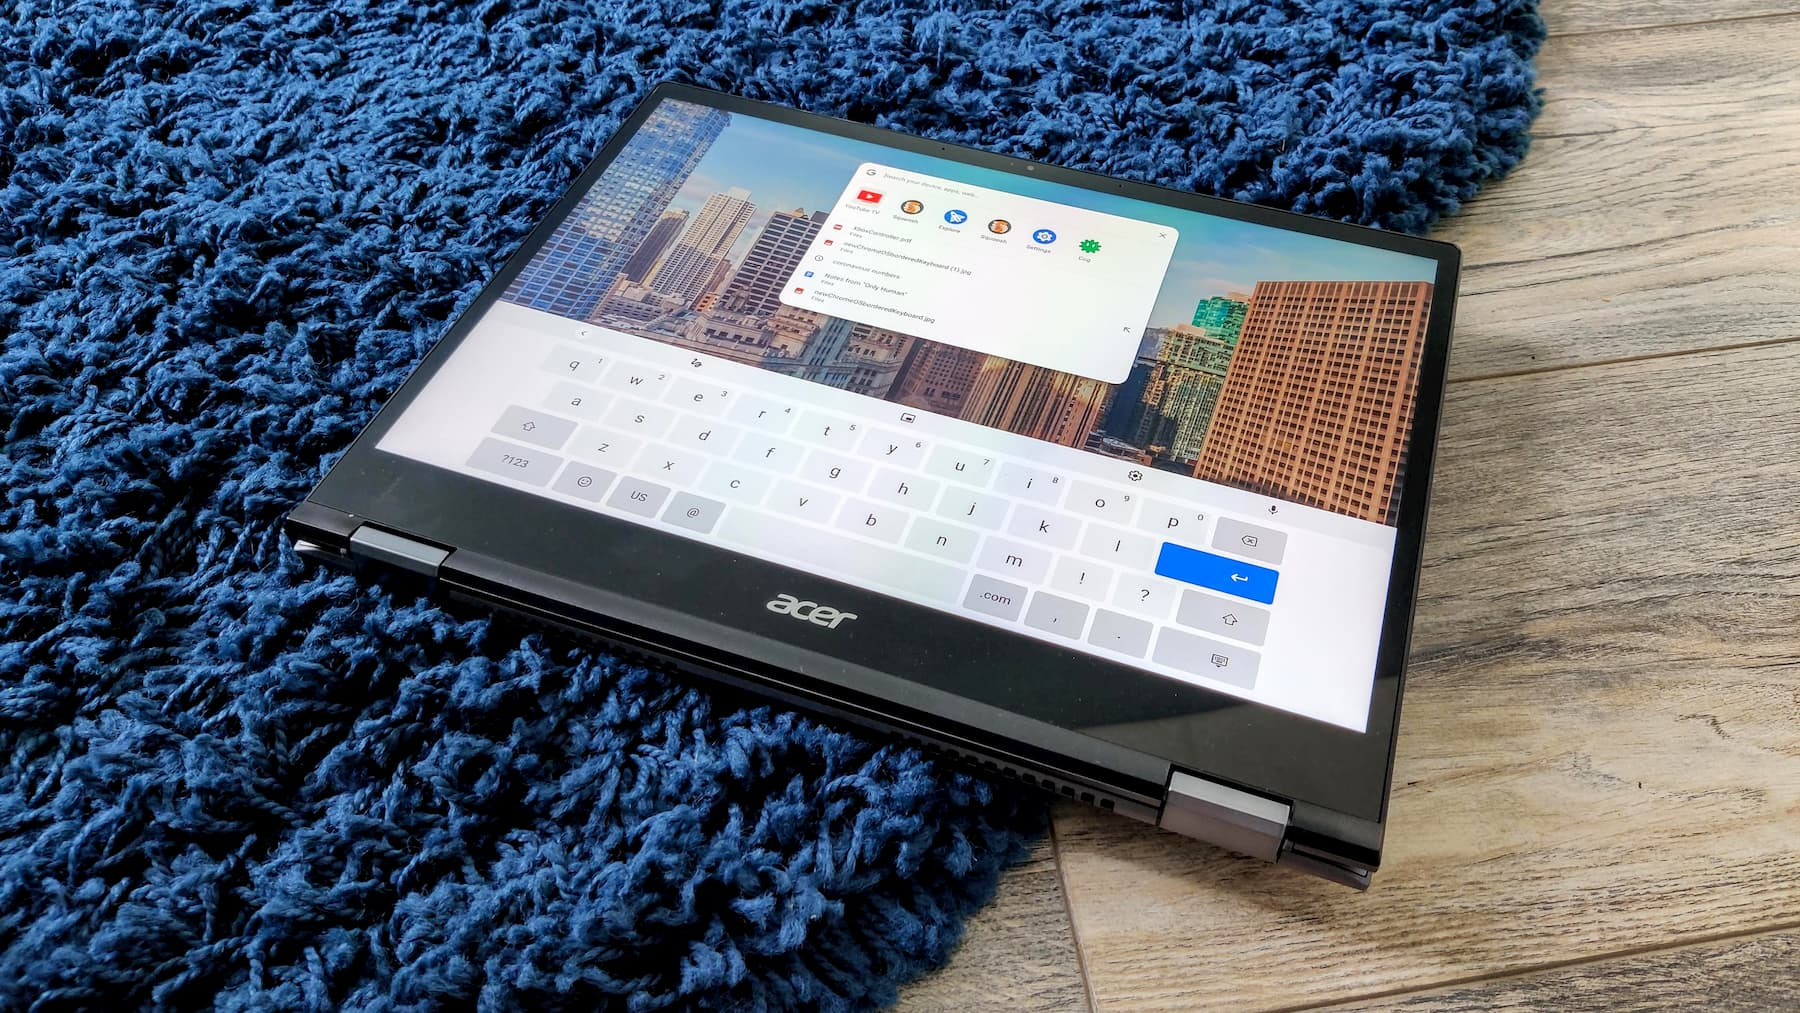 The Chromebook virtual keyboard will get a facelift in Chrome OS 85